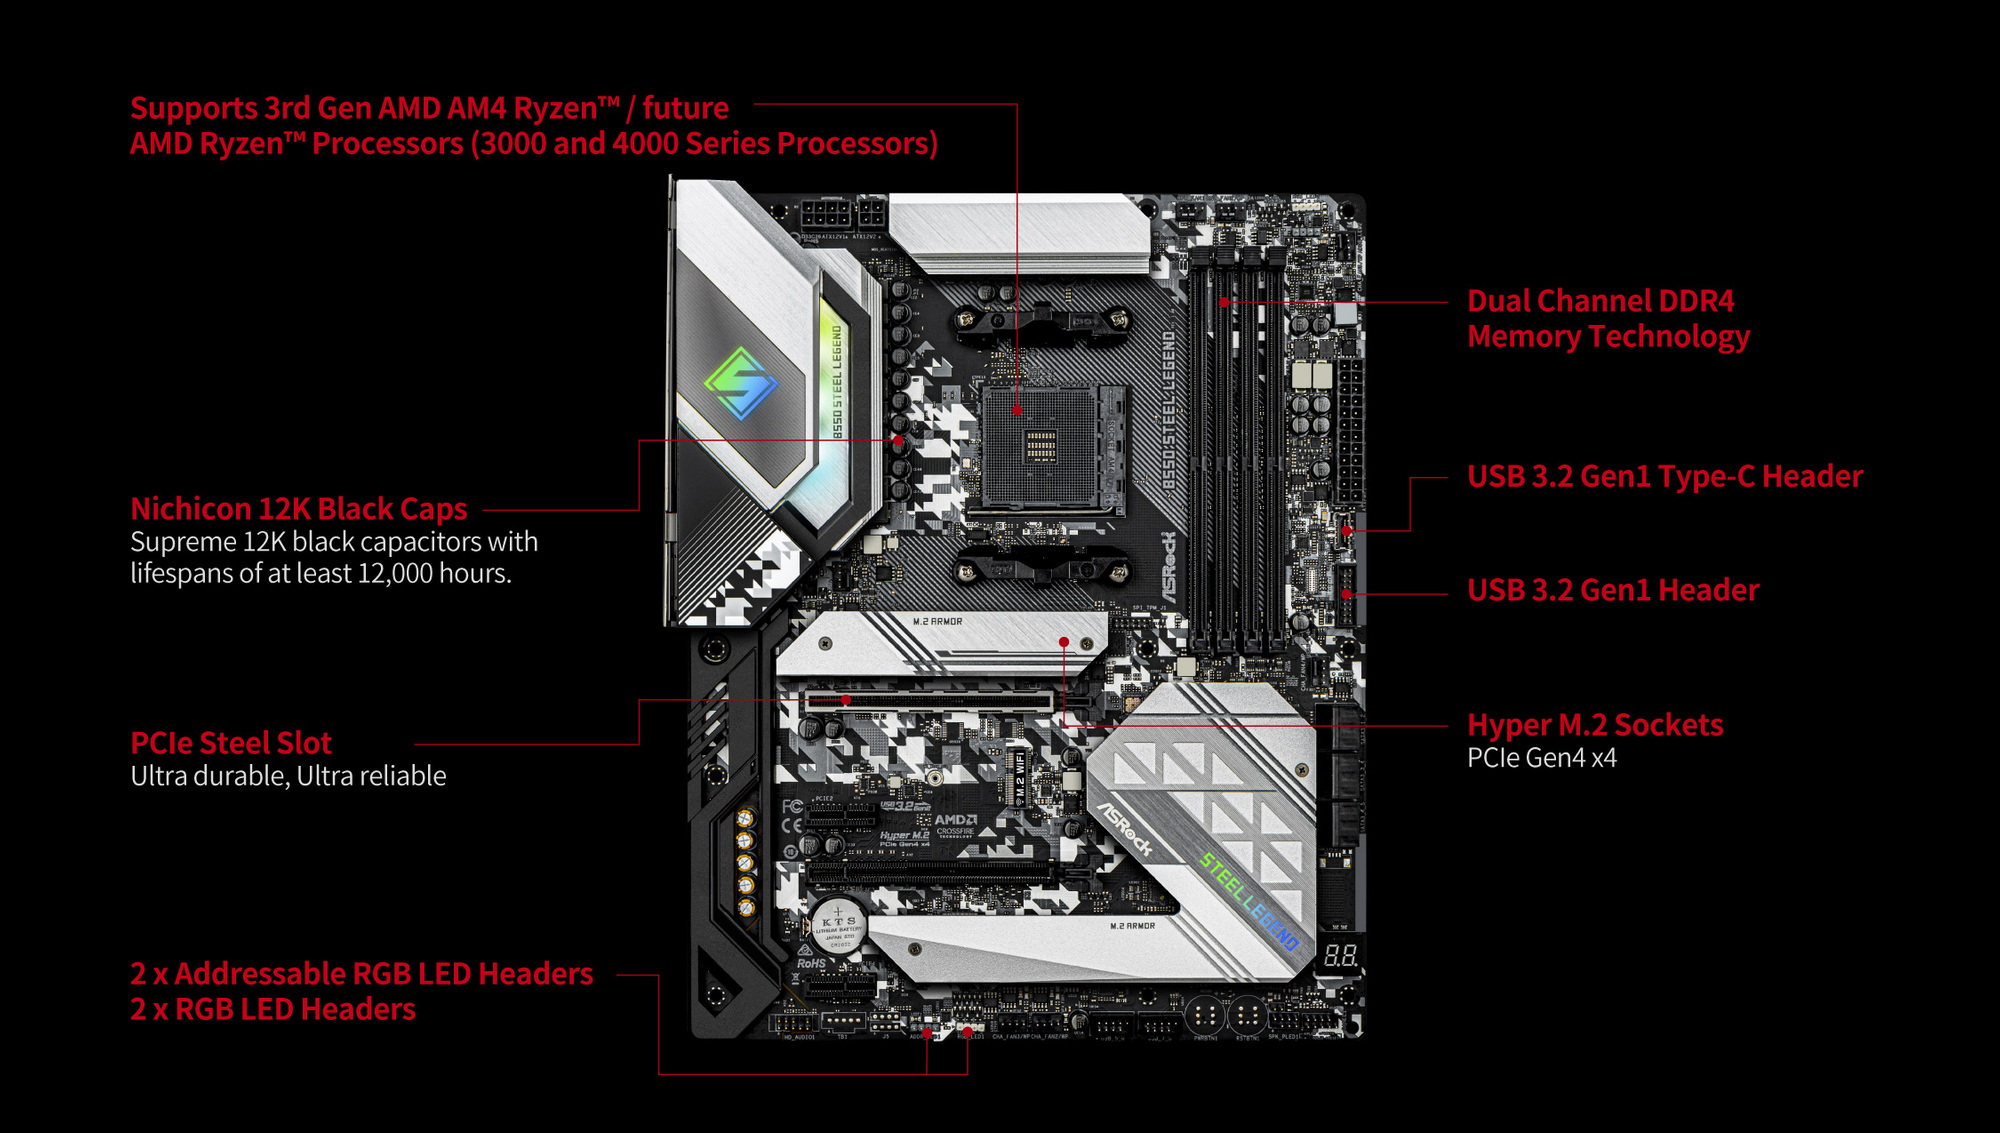 detail of the motherboard